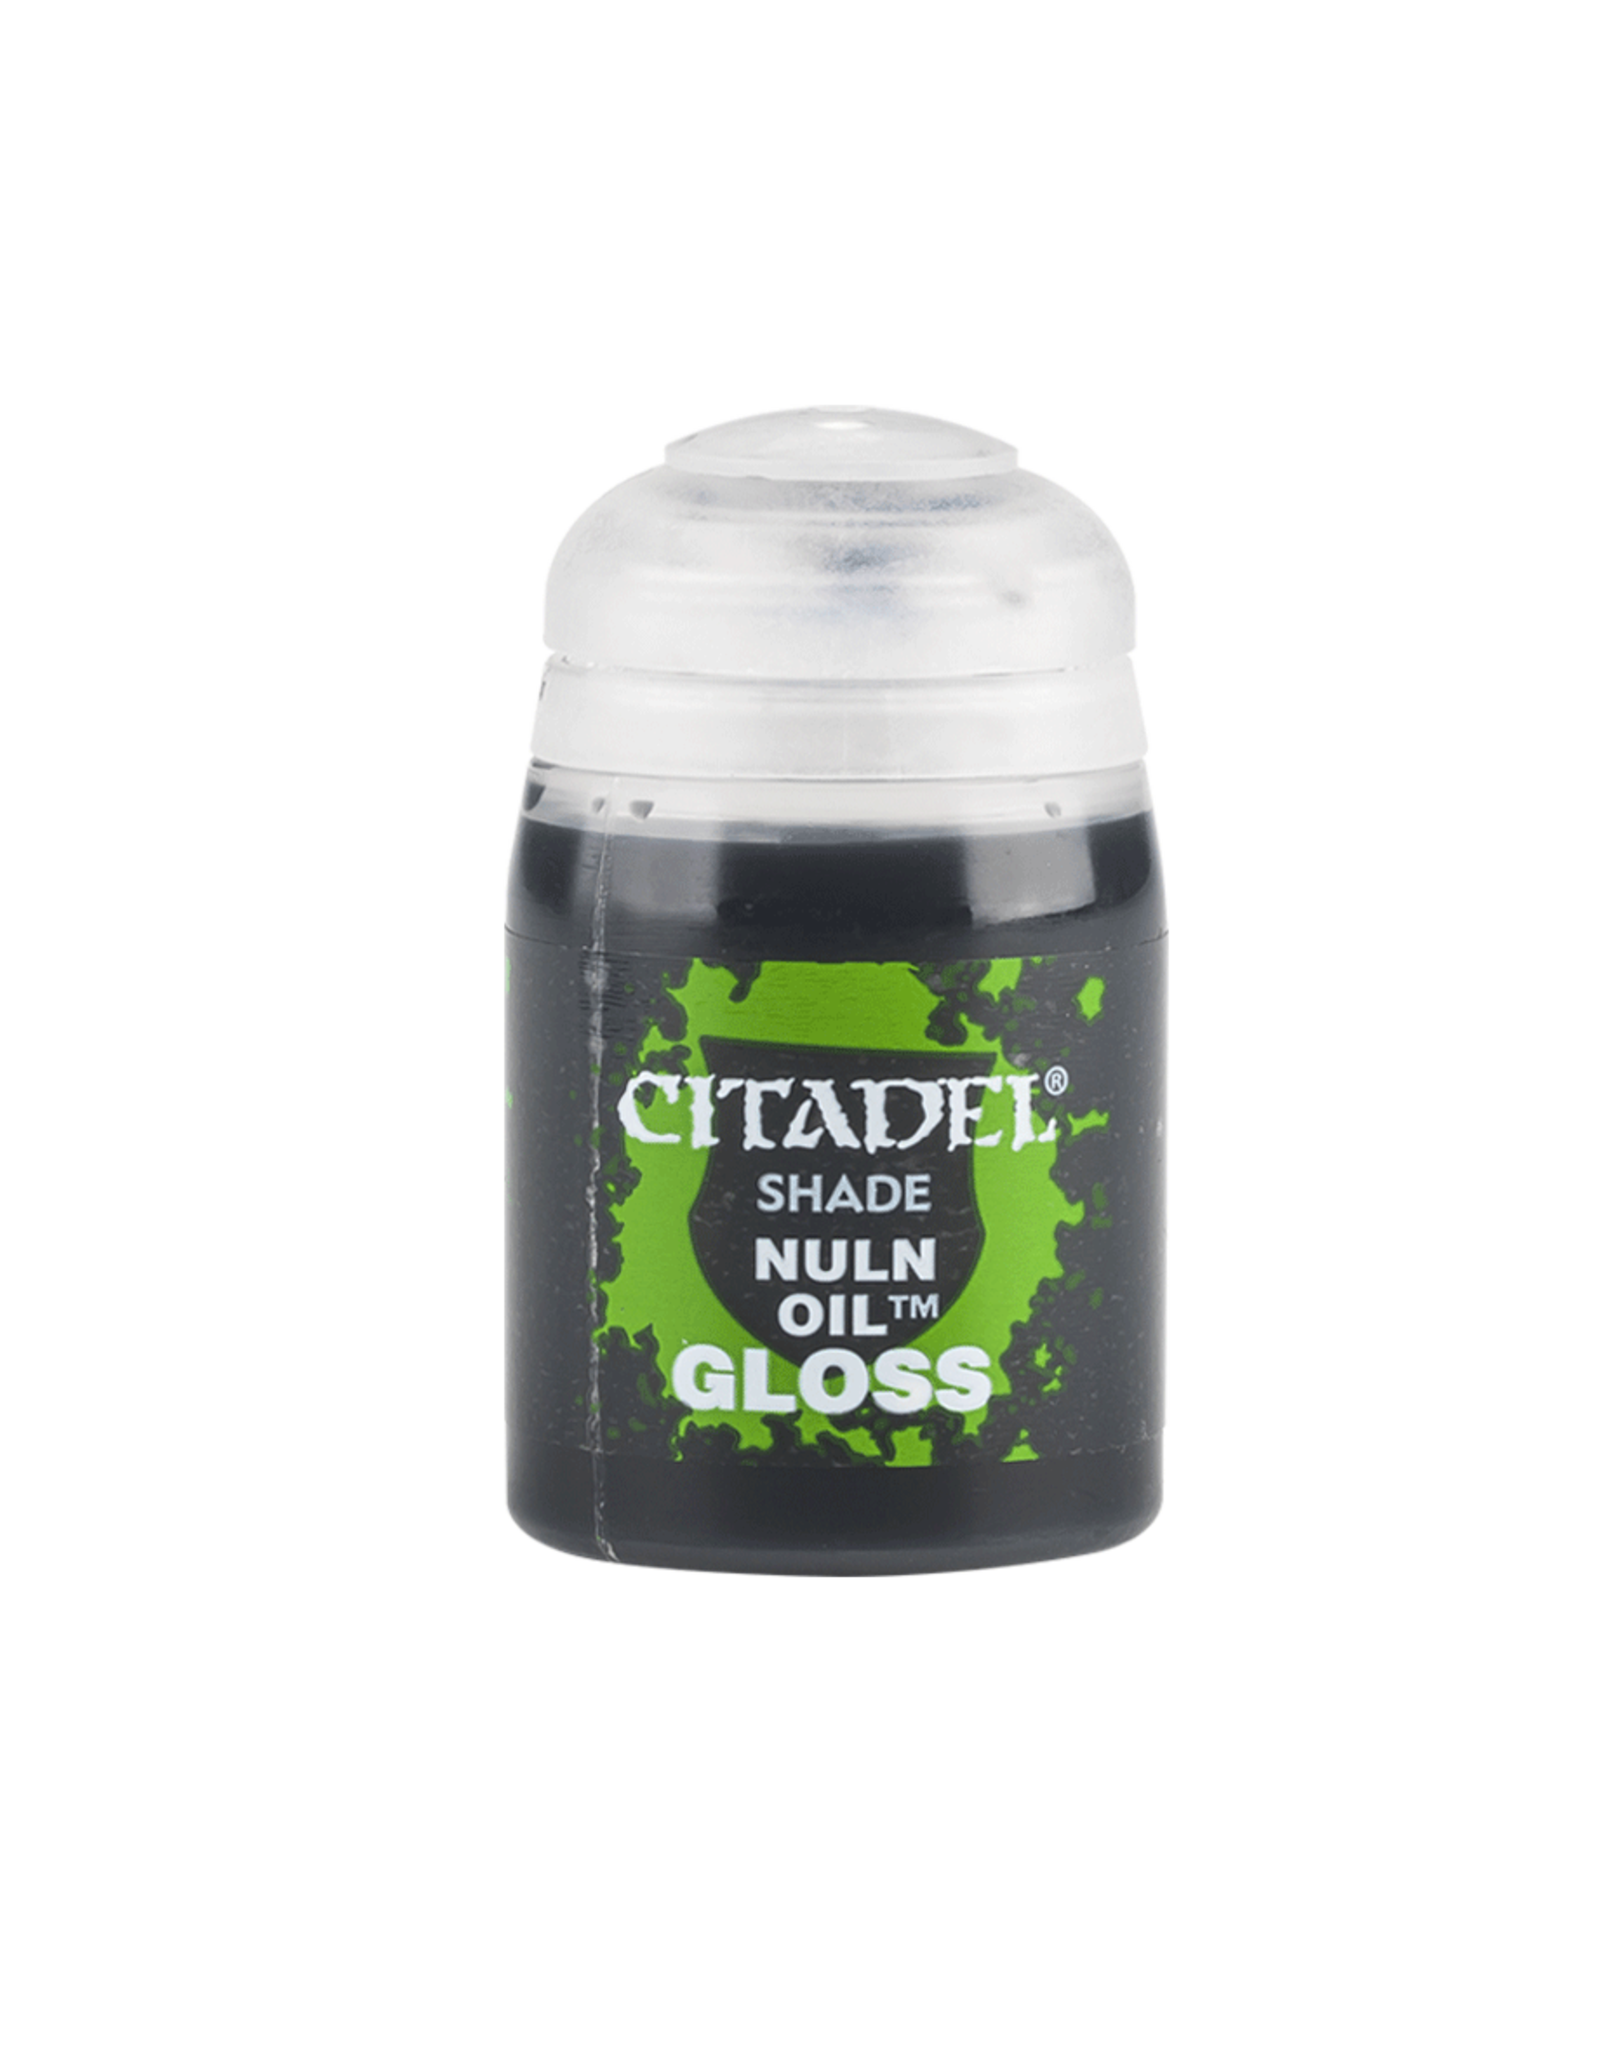 Citadel Citadel Paints Shade Paint Nuln Oil, Gloss